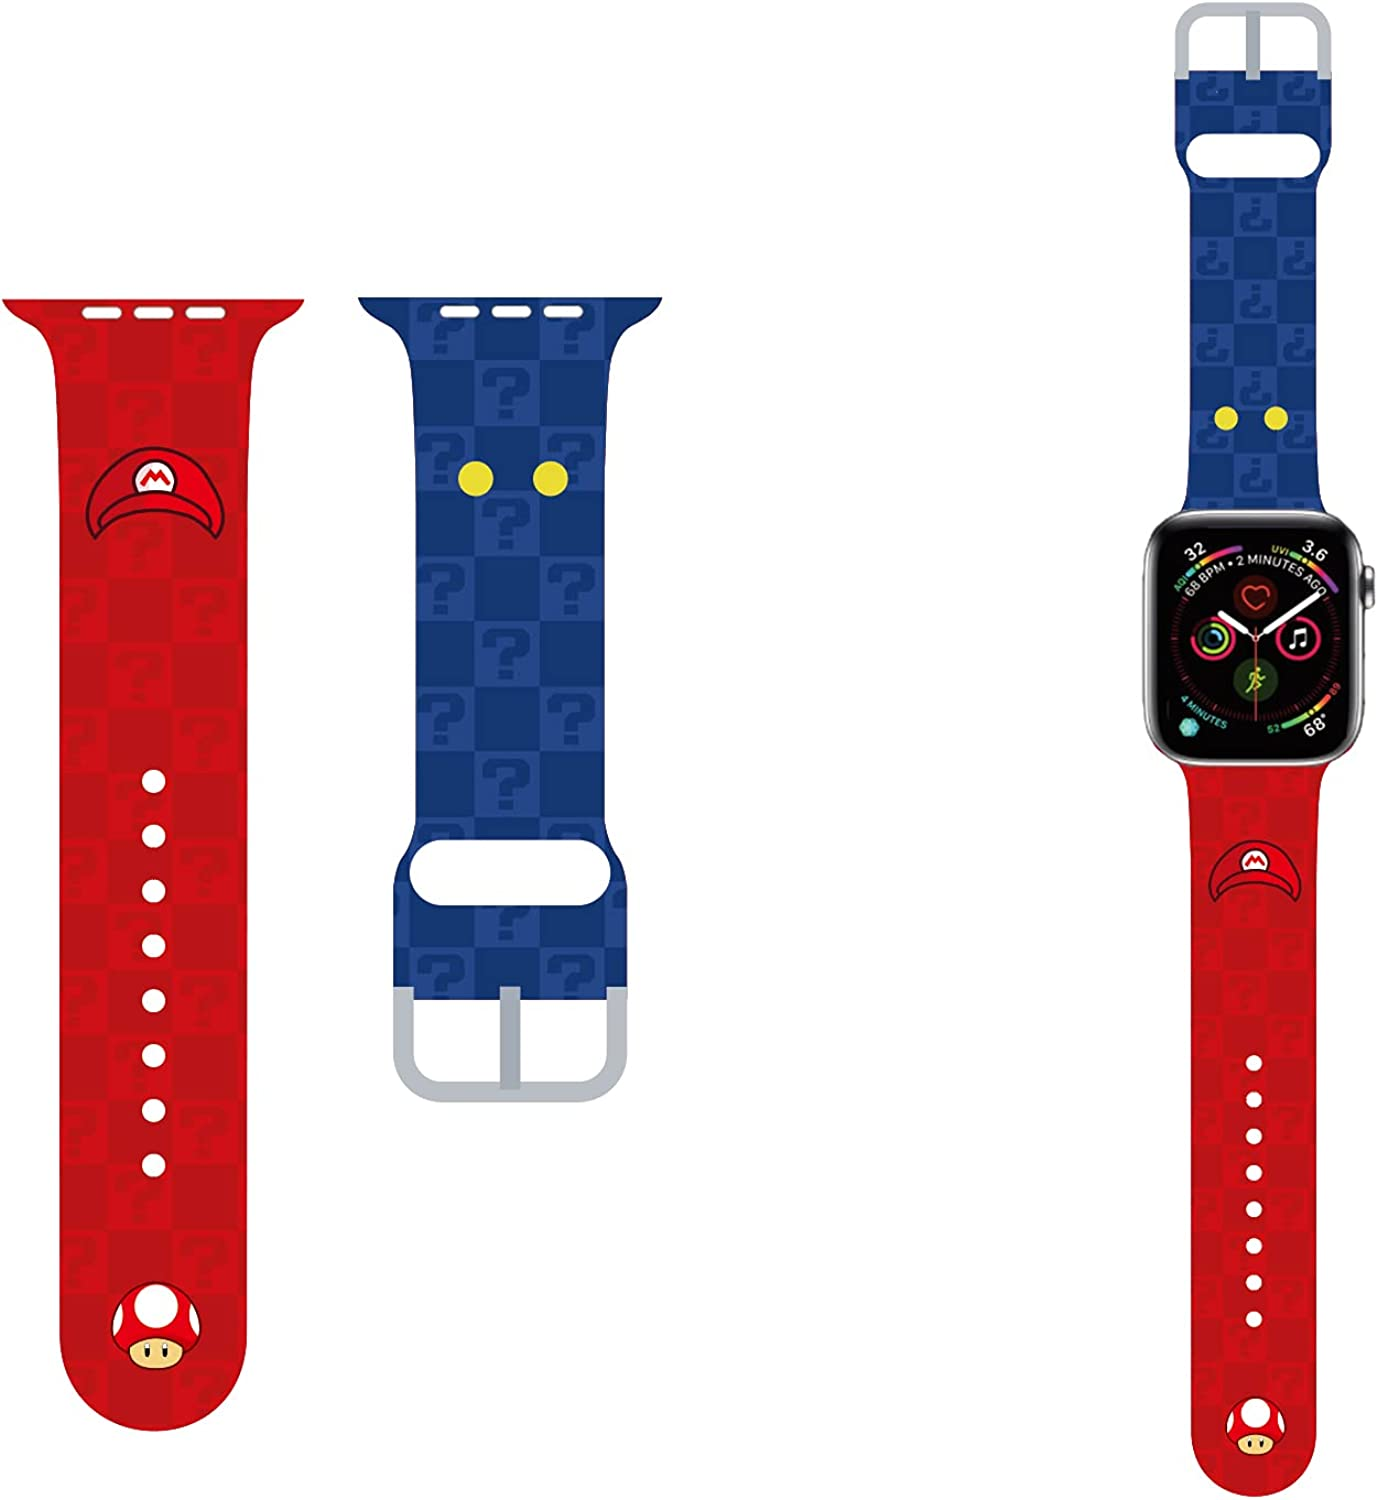 MoimTech Anime Cute apple watch Band compatible with Apple watch 40mm 38mm 44mm 42mm,Sport Silicone Designer Apple watch bands for iWatch Series SE/6/5/4/3/2/1 for Kids Women Men